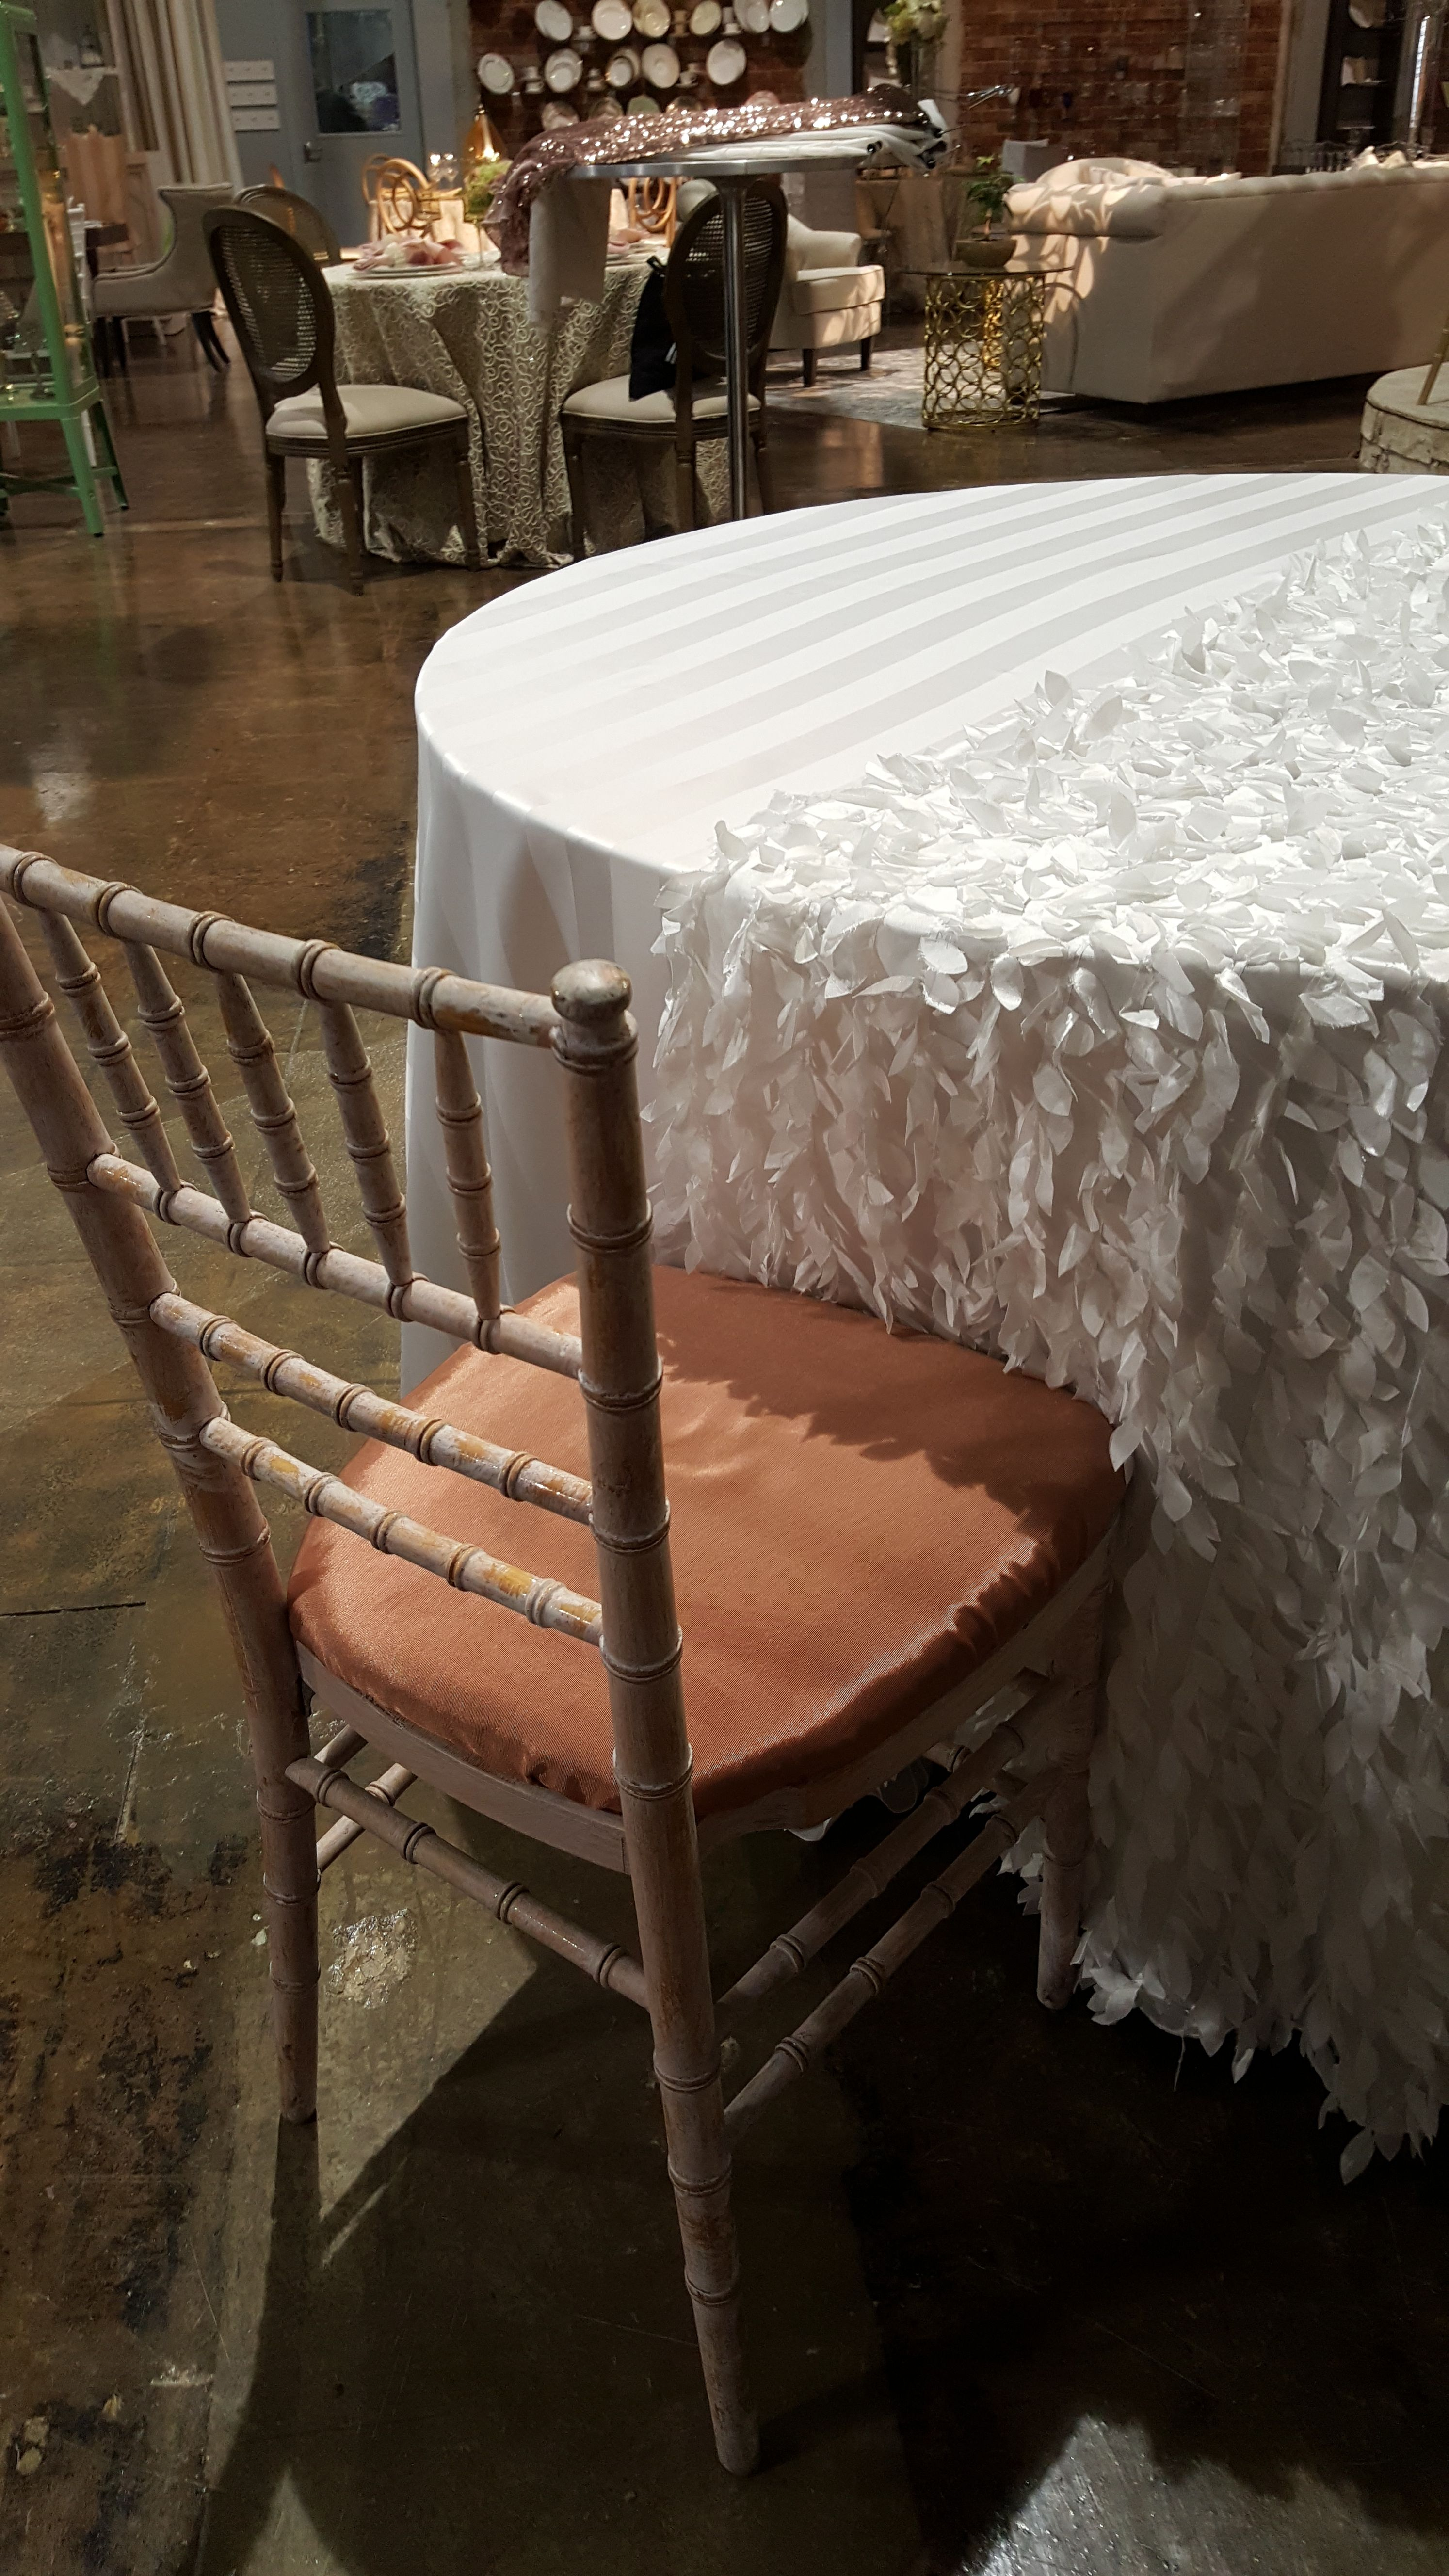 Select Rentals Whitewash Chiavari Chair With Rosegold Cushion For Cocktail Hour Low Tables 3 Per Tab Rental Decorating Wedding Rentals Decor Chiavari Chairs